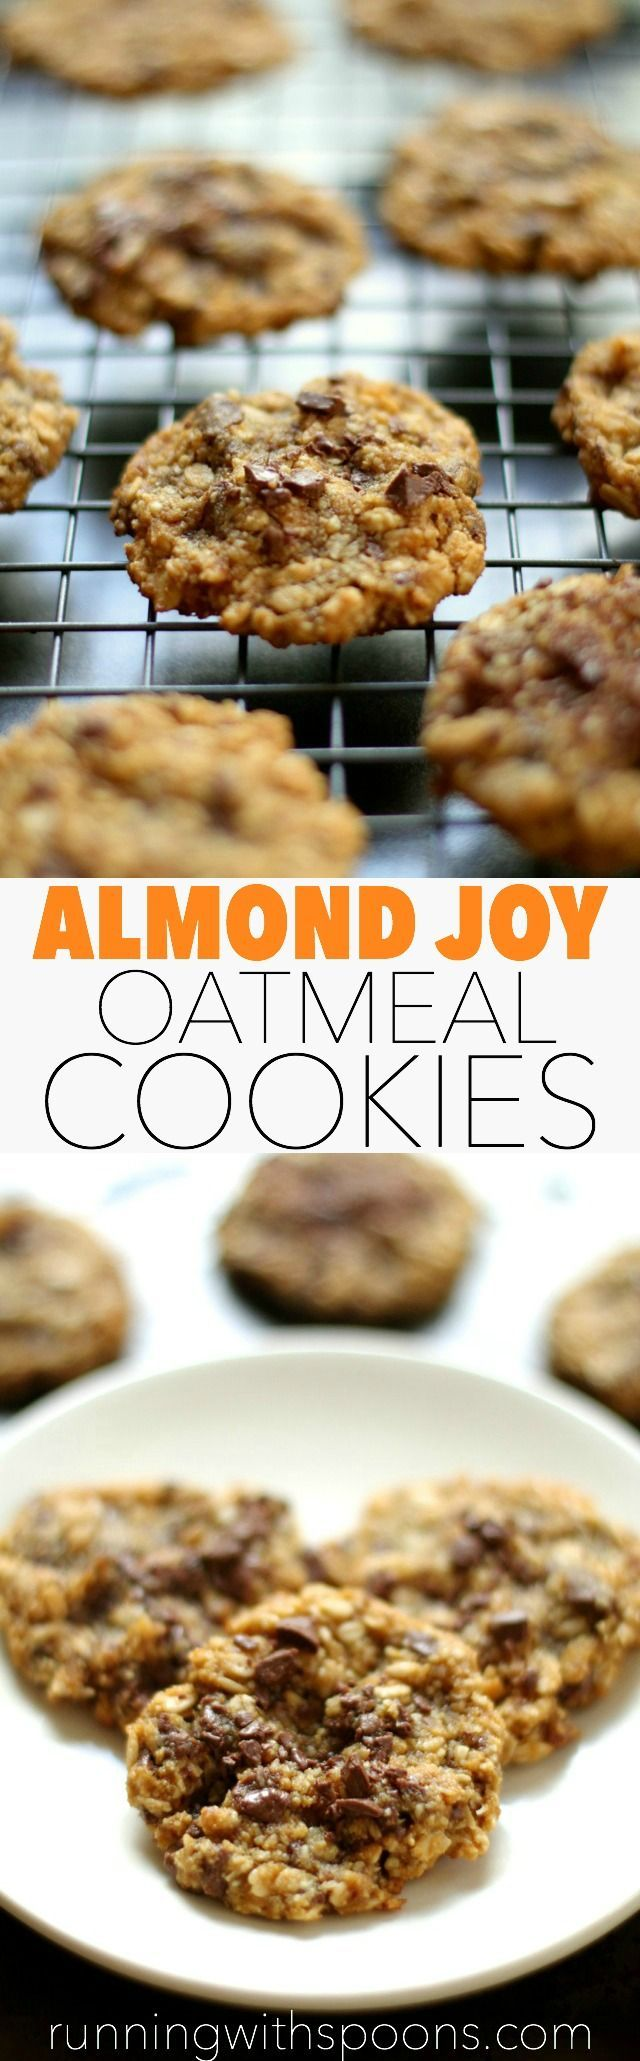 Almond Joy Oatmeal Cookies -- almond flour, coconut, and chocolate in a soft and chewy gluten-free oatmeal cookie || runningwithspoons... #glutenfree #healthy #cookies